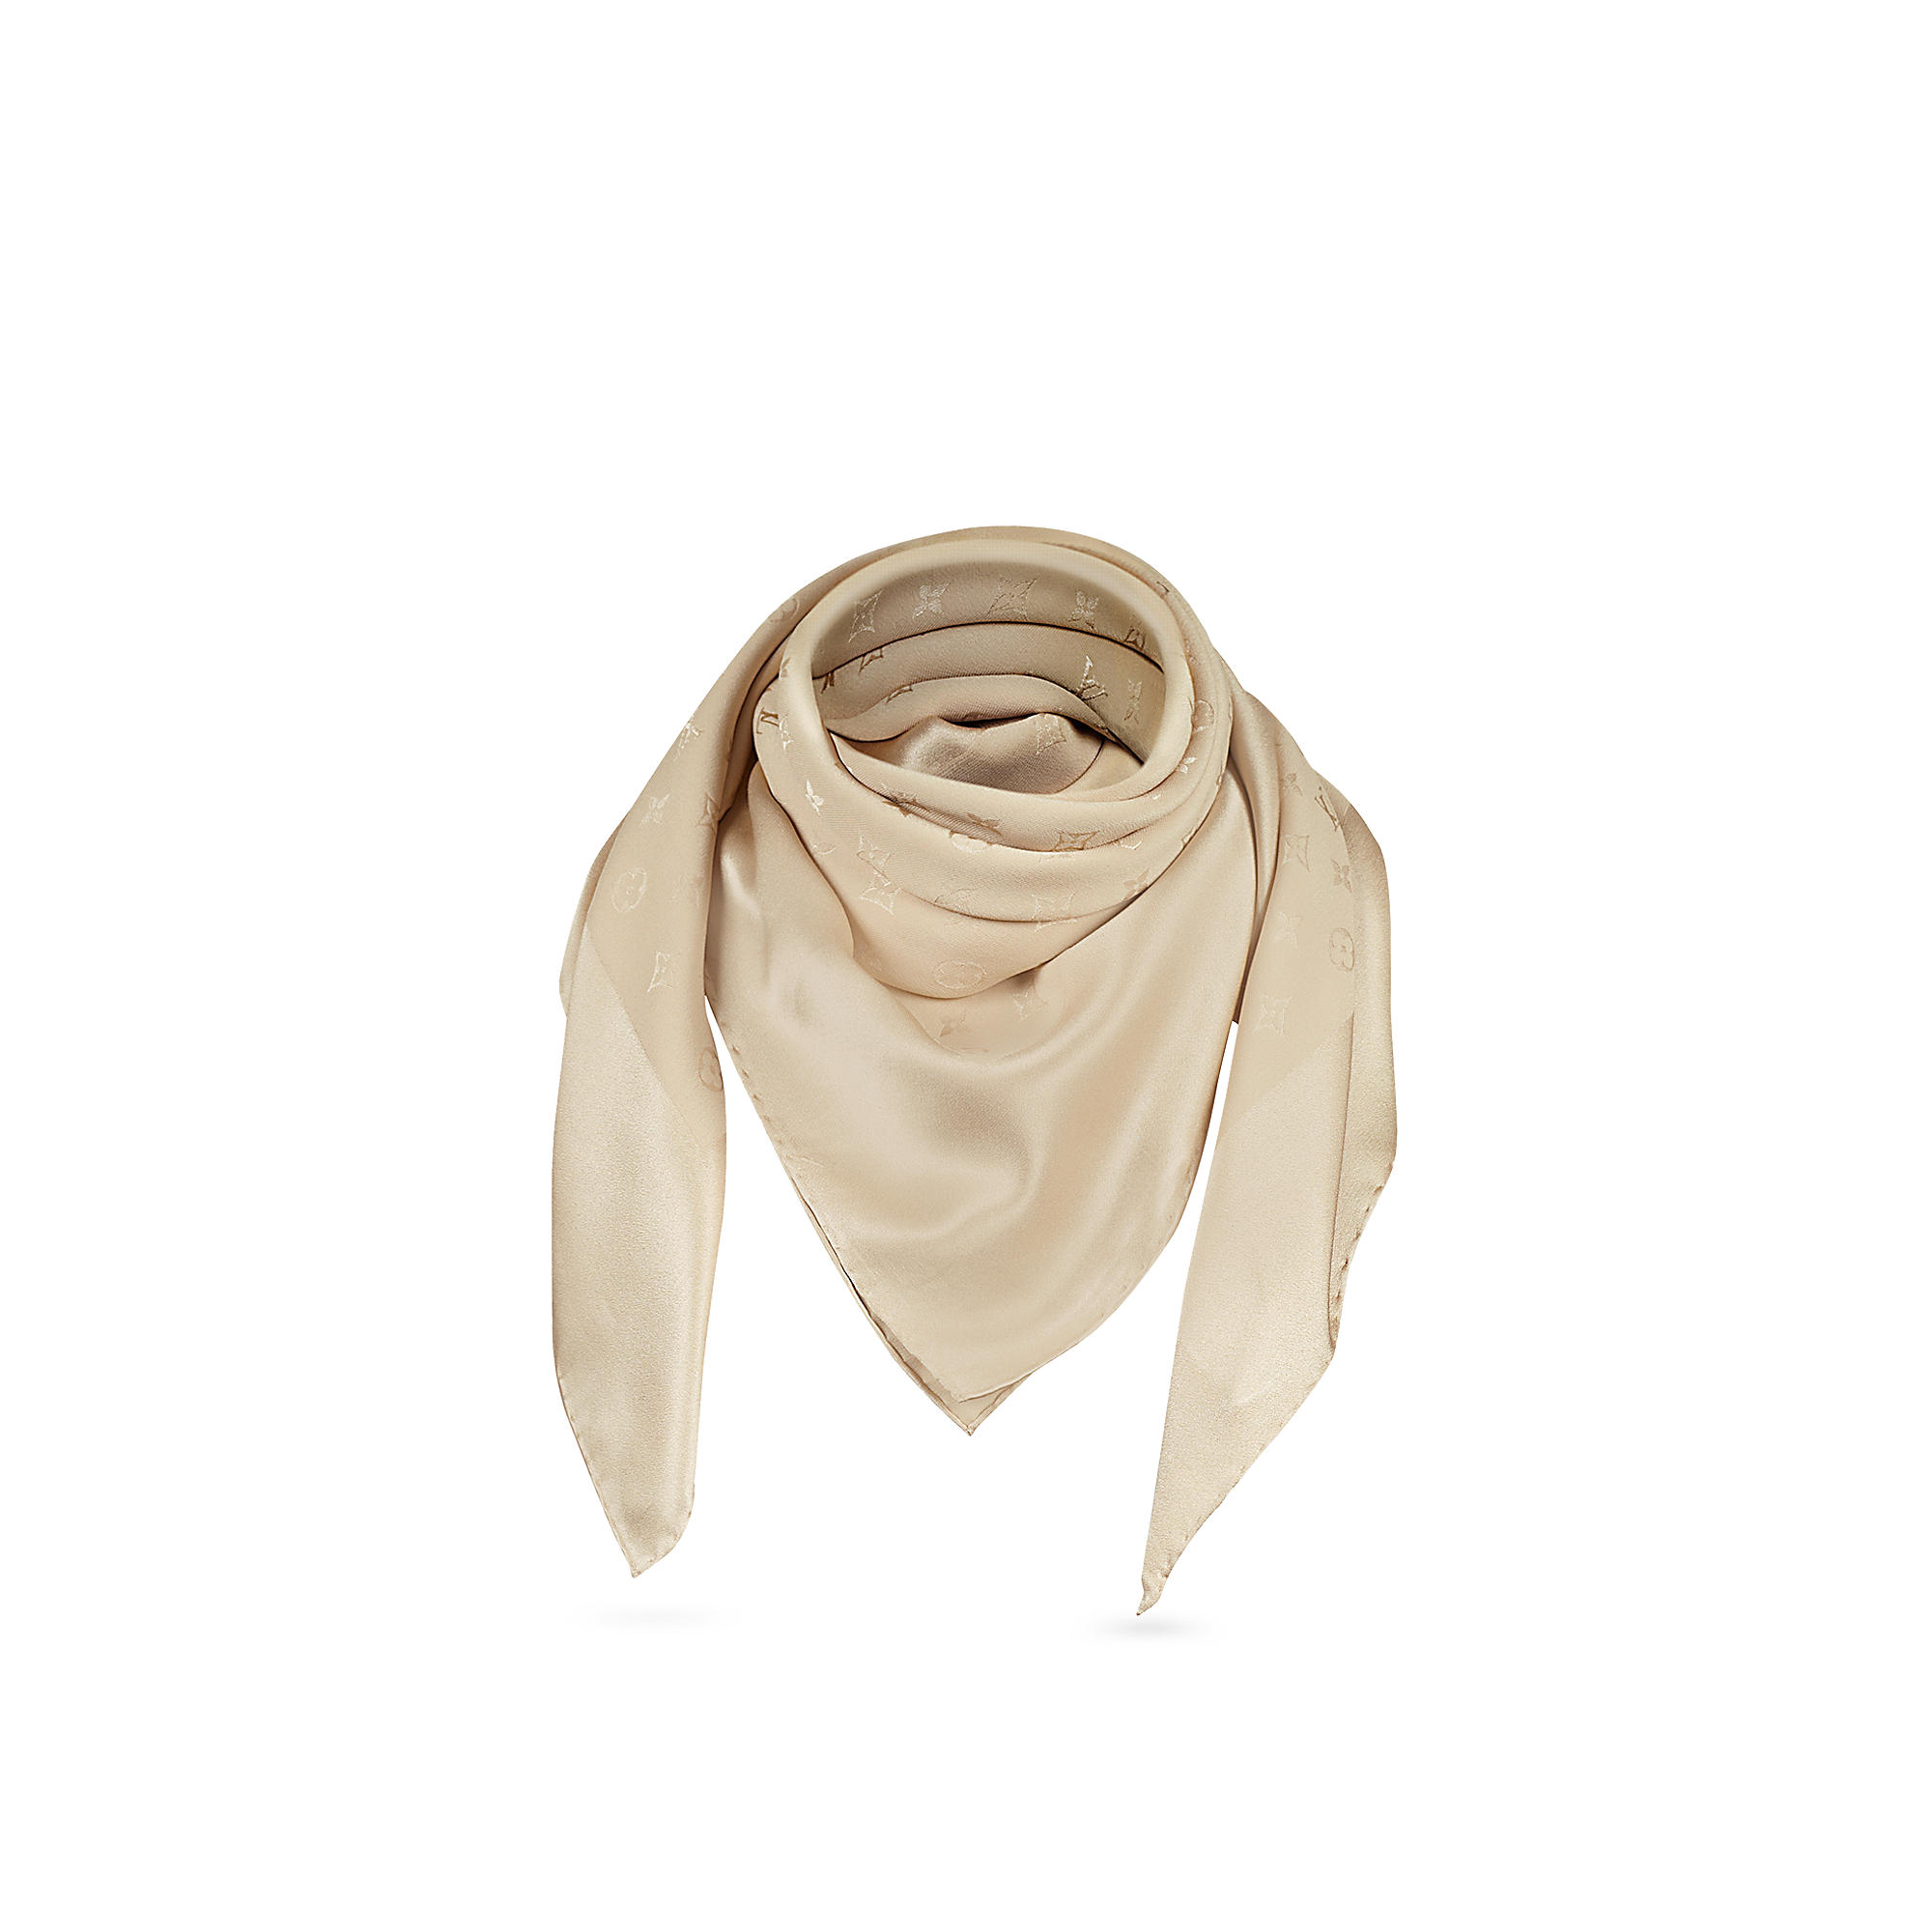 Louis Vuitton M71146 Foulard Monaco